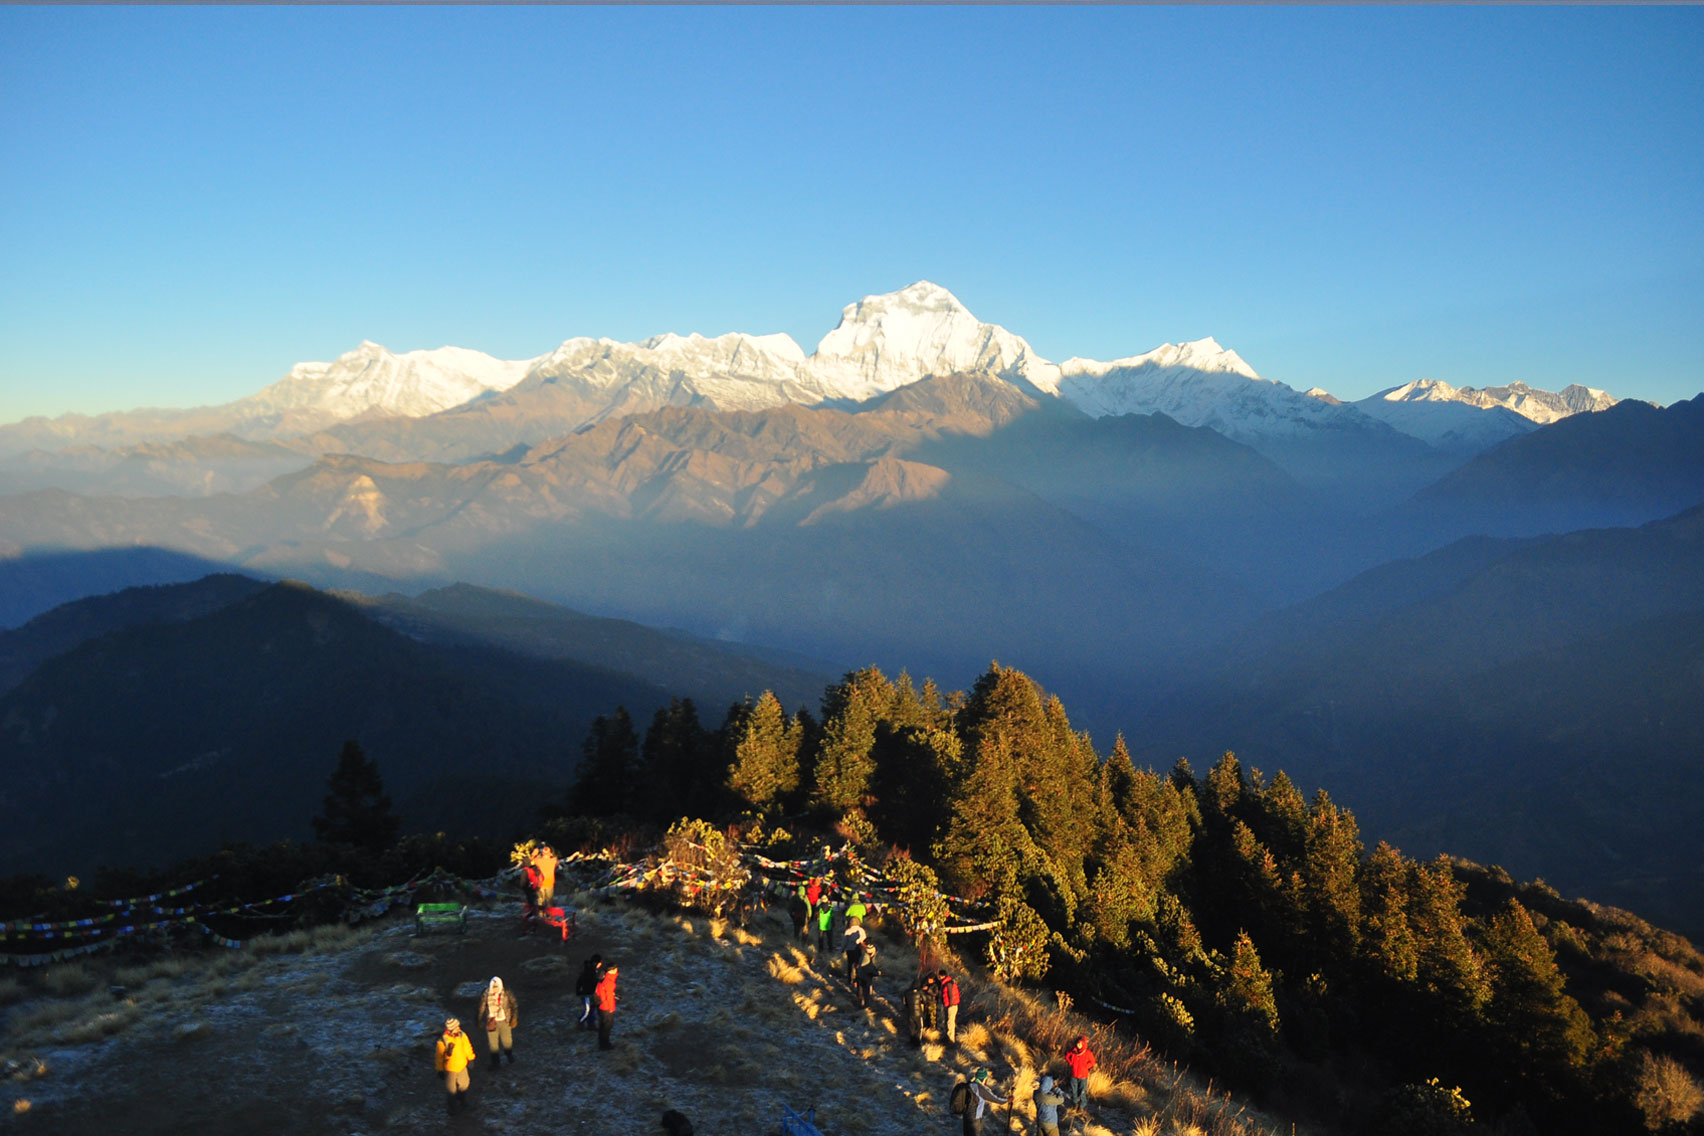 Day 5: Trek from Ghorepani (2874m) to Poon Hill (1hr, 3200m) and to Tadapani (5hrs, 2630m)